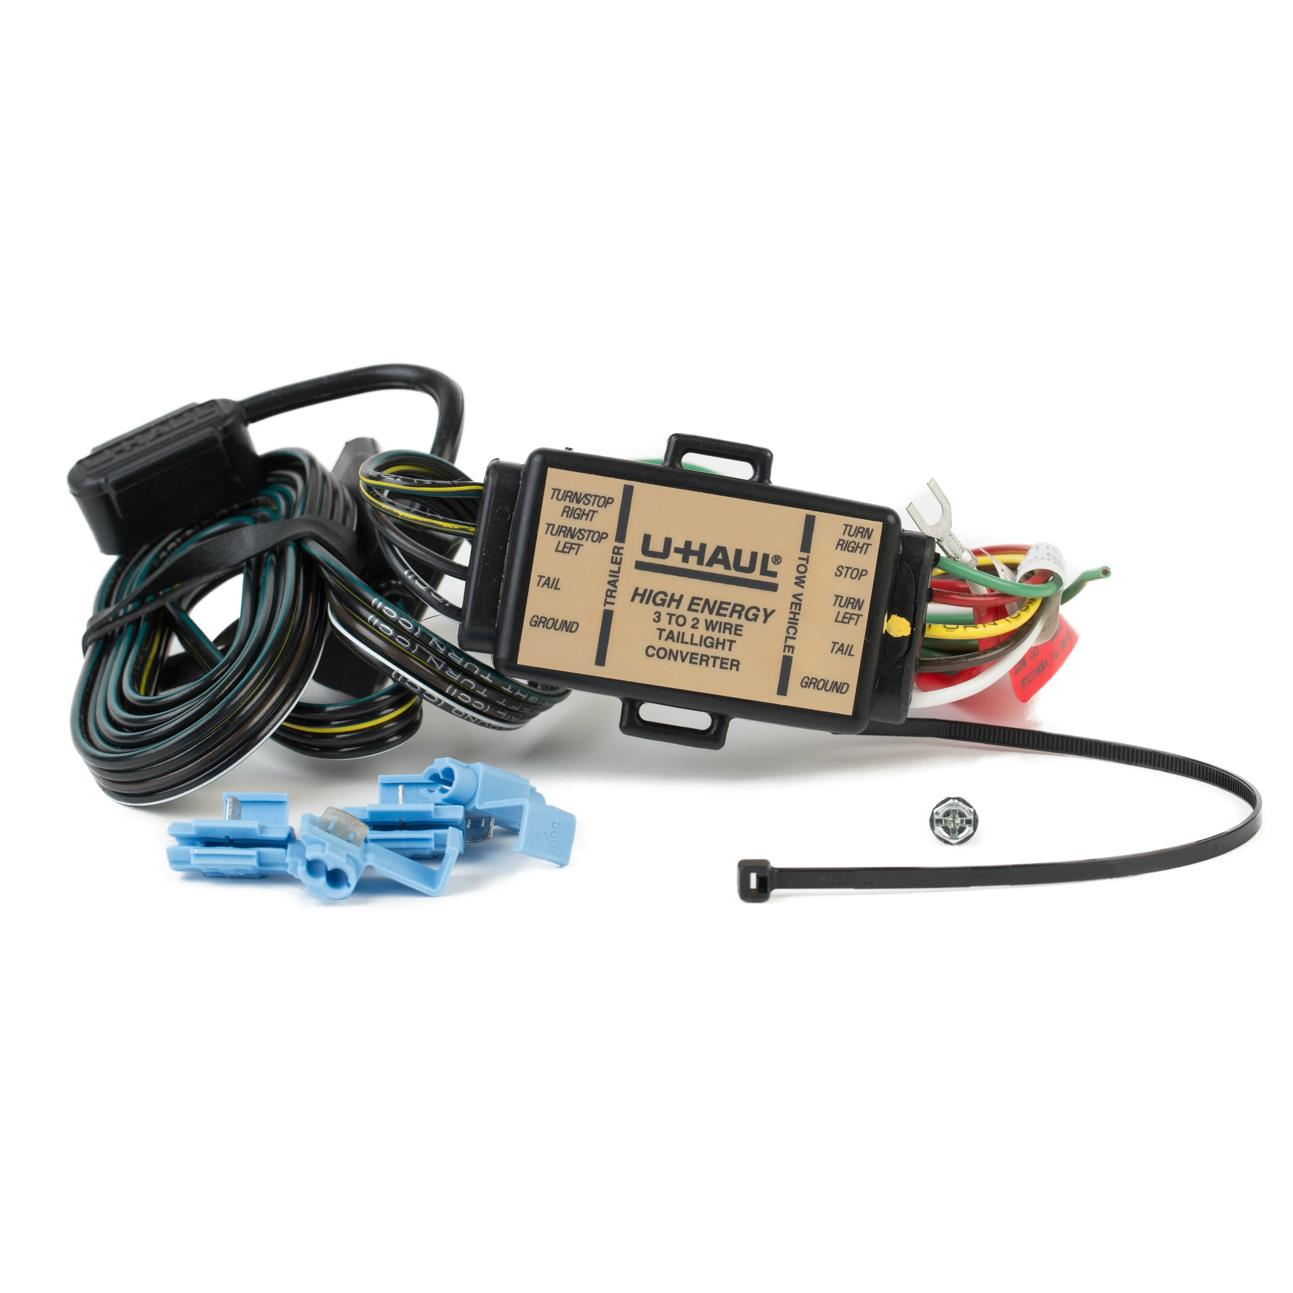 Gmc Acadia Trailer Wiring Adapter from www.uhaul.com